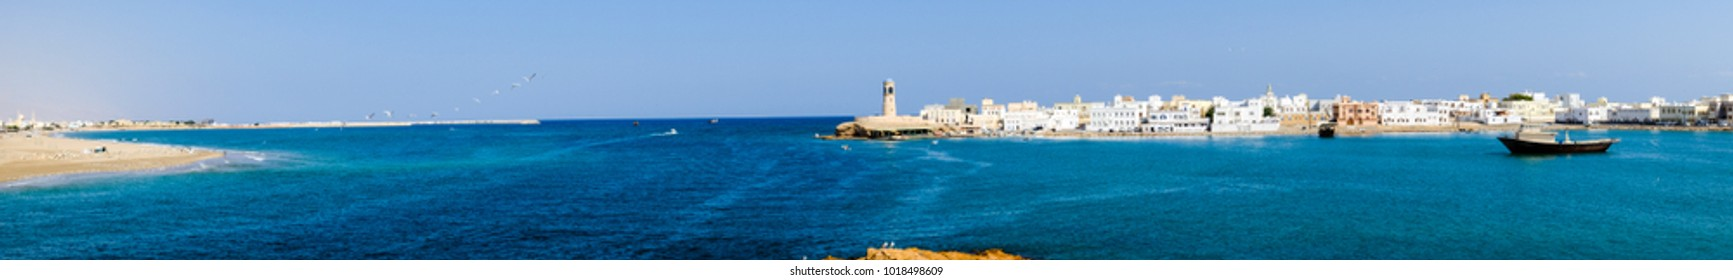 Sur, Ash Sharqiyah / Sultanate of Oman - Feb 2 2018: Panoramic view over the port of Sur, capital city of Ash Sharqiyah Region, northeastern Oman, on the coast of the Gulf of Oman.